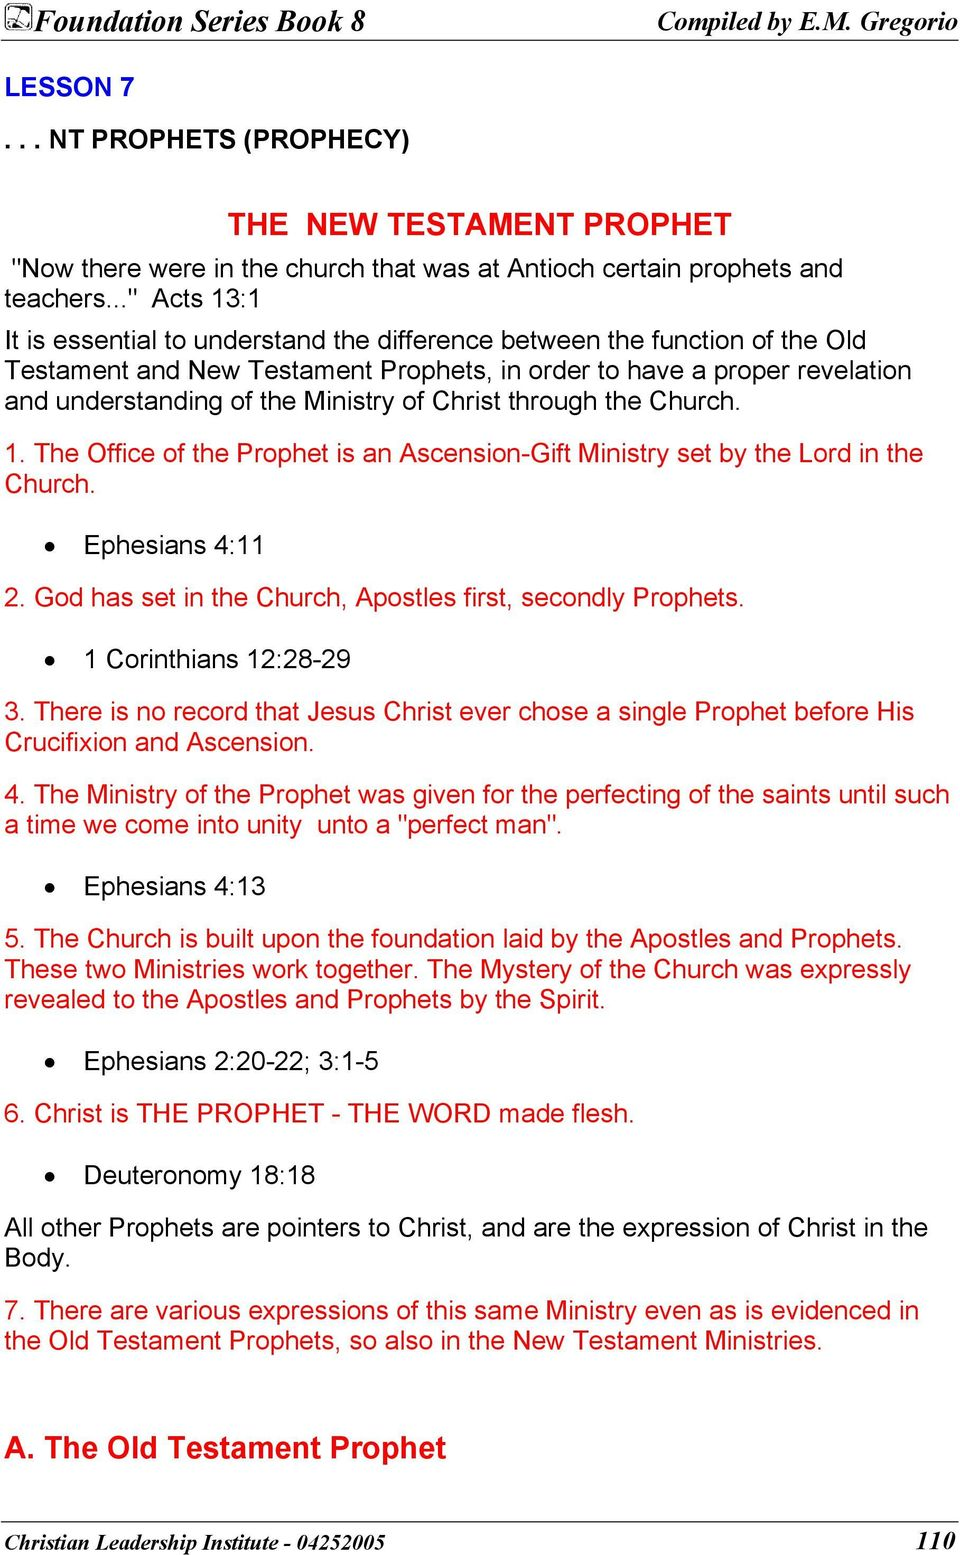 of Christ through the Church. 1. The Office of the Prophet is an Ascension-Gift Ministry set by the Lord in the Church. Ephesians 4:11 2. God has set in the Church, Apostles first, secondly Prophets.